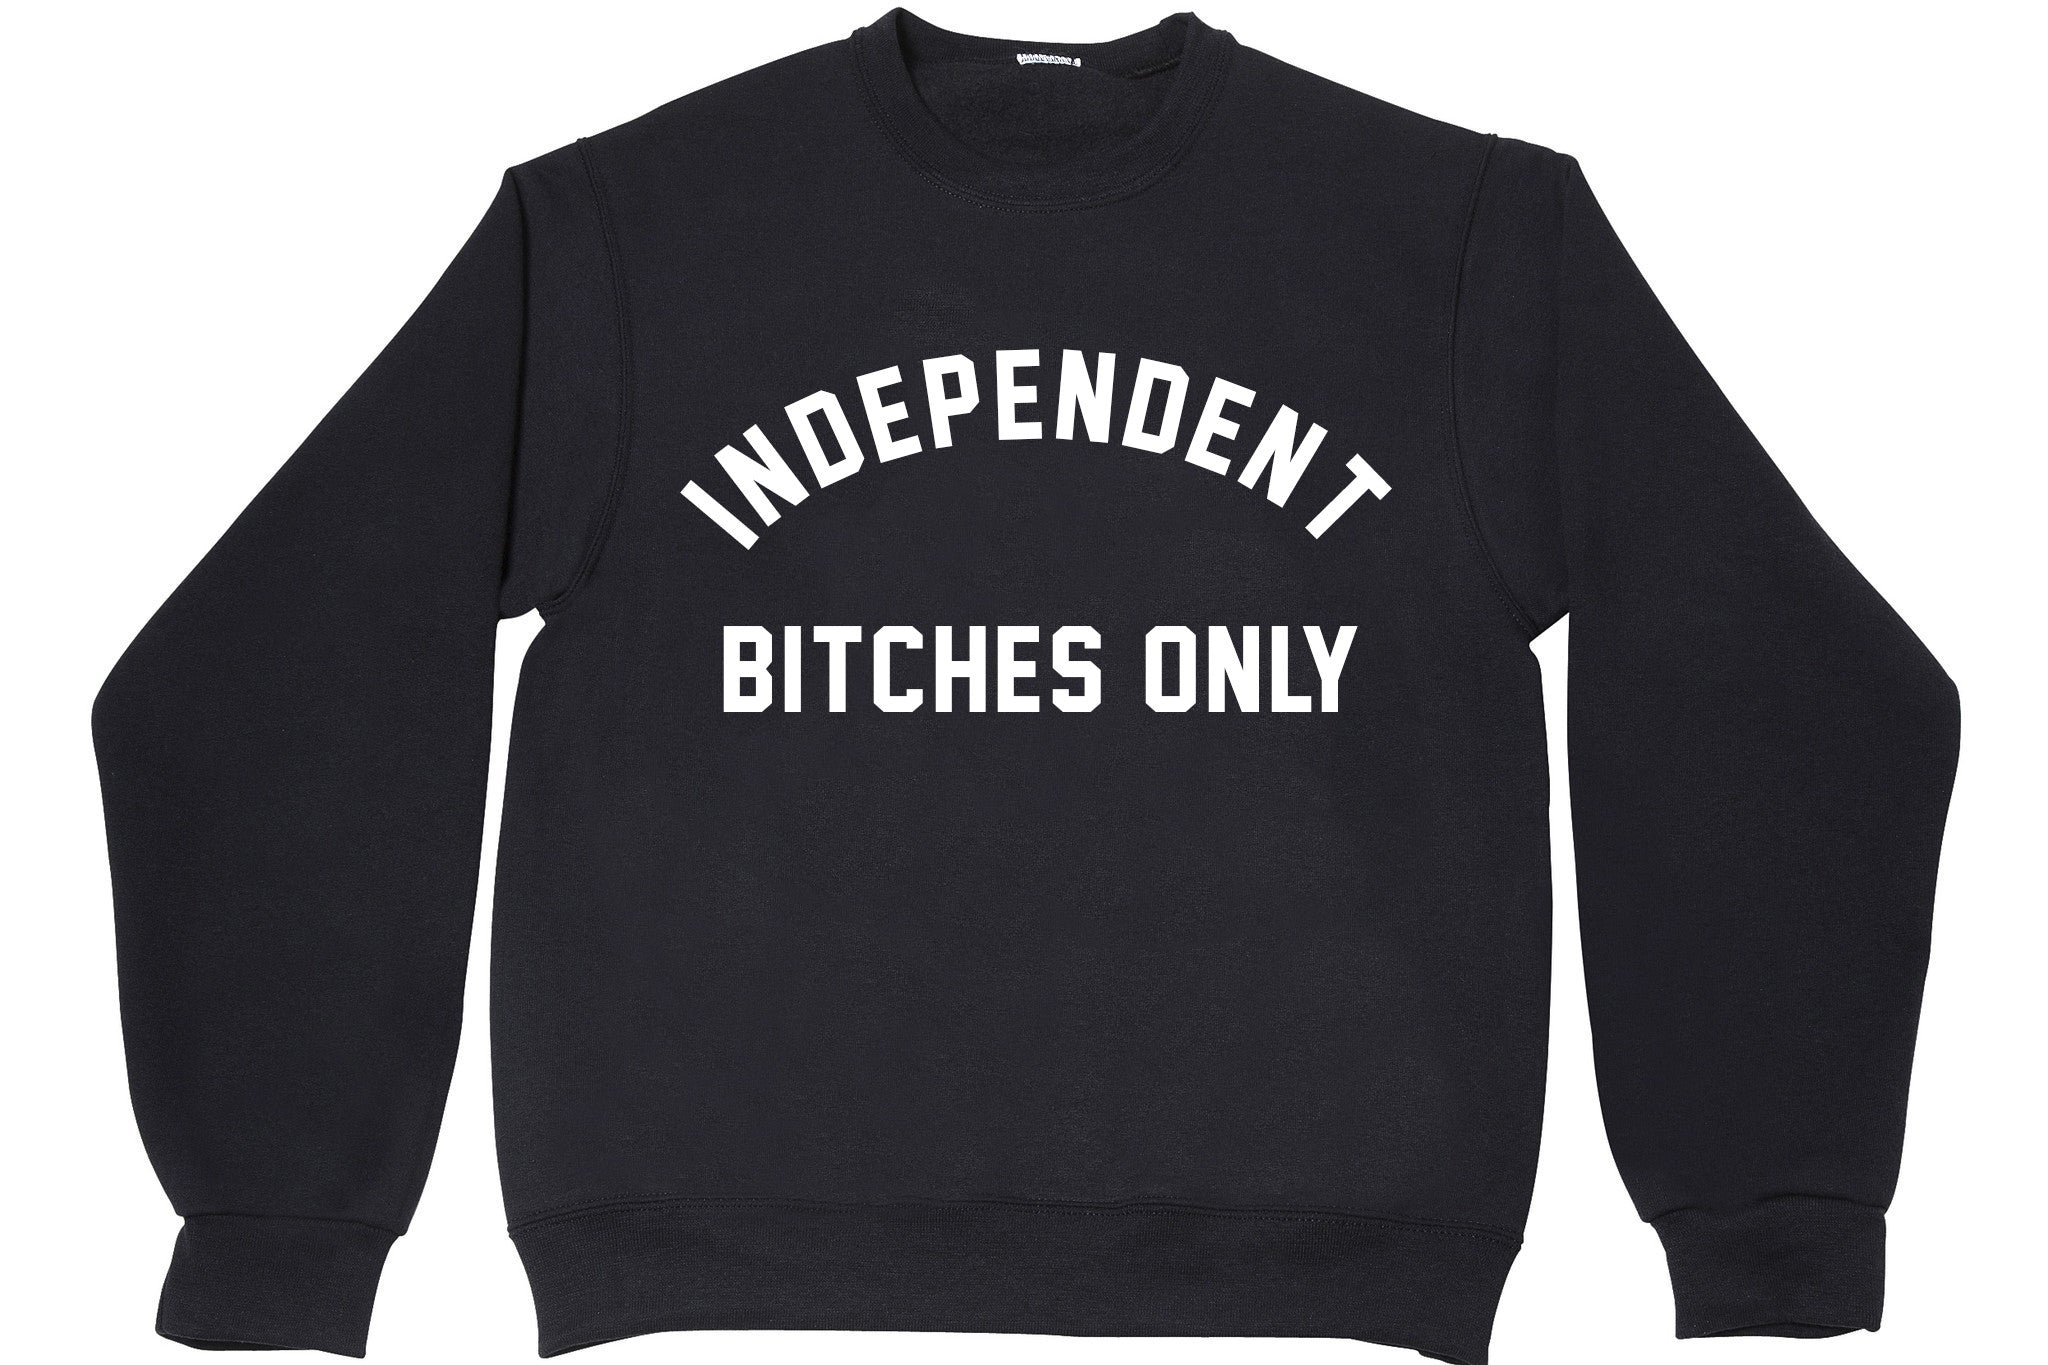 INDEPENDENT BITCHES ONLY